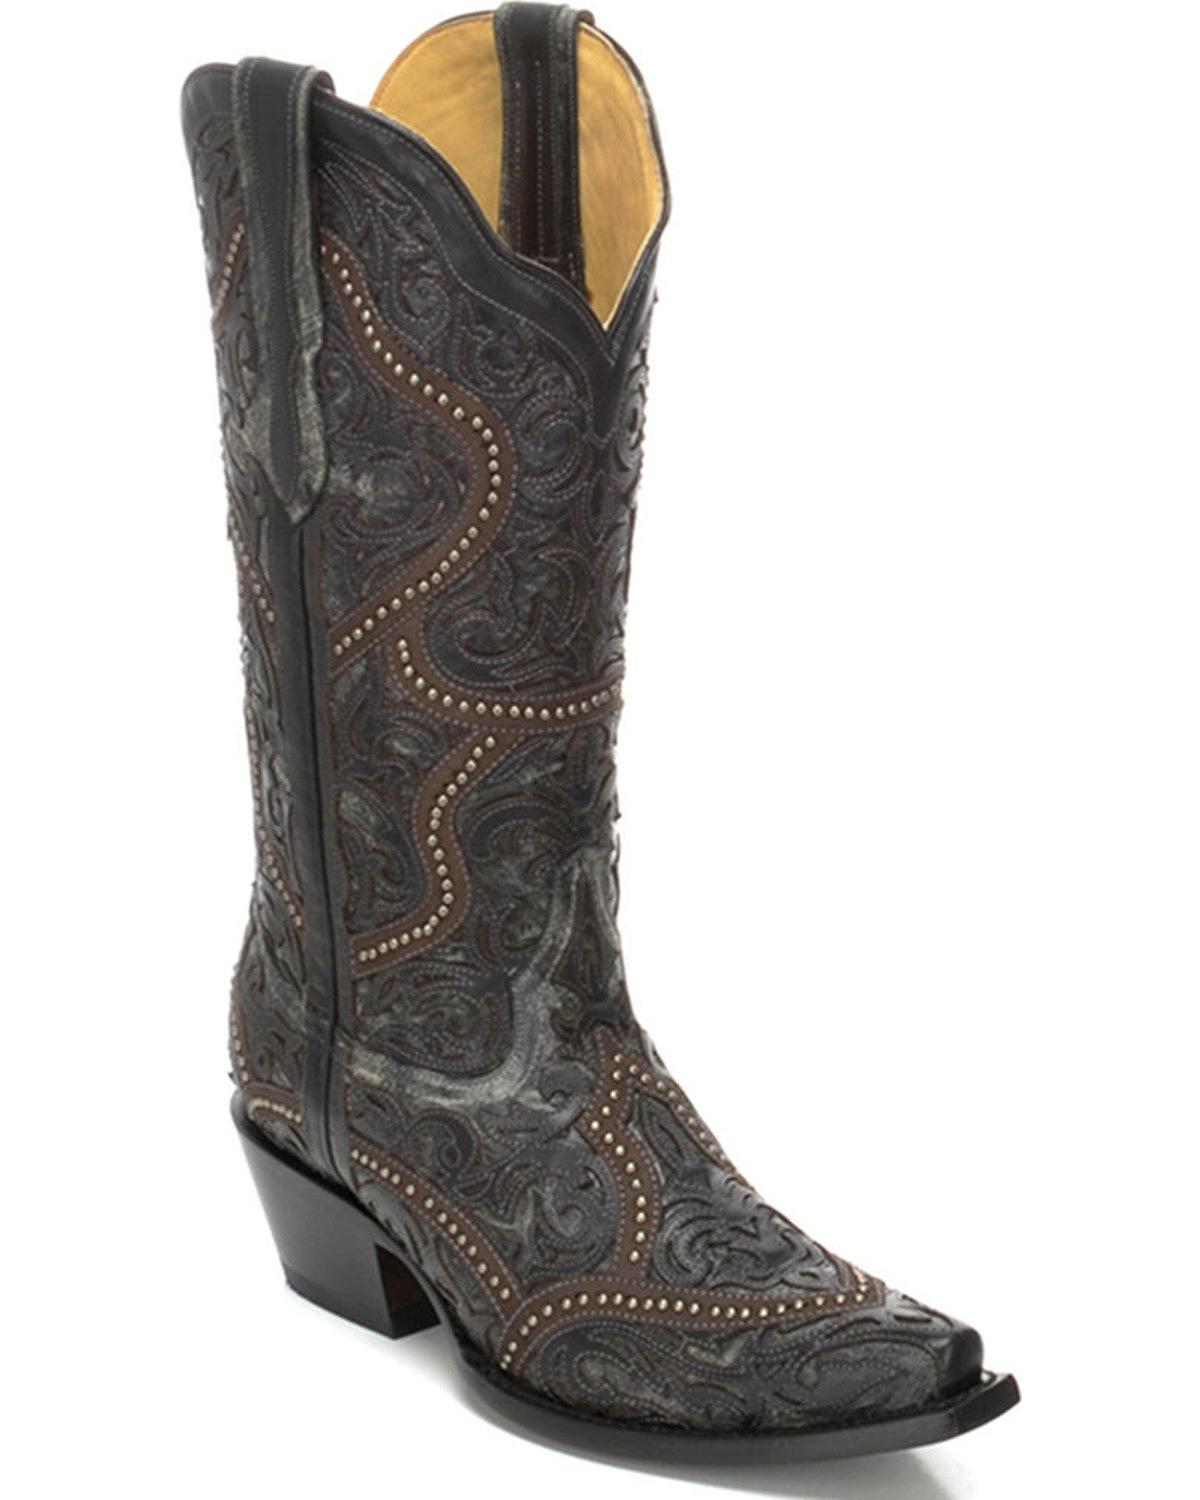 Women's Full Overlay and Studs Cowgirl Boot Snip Toe - G1310